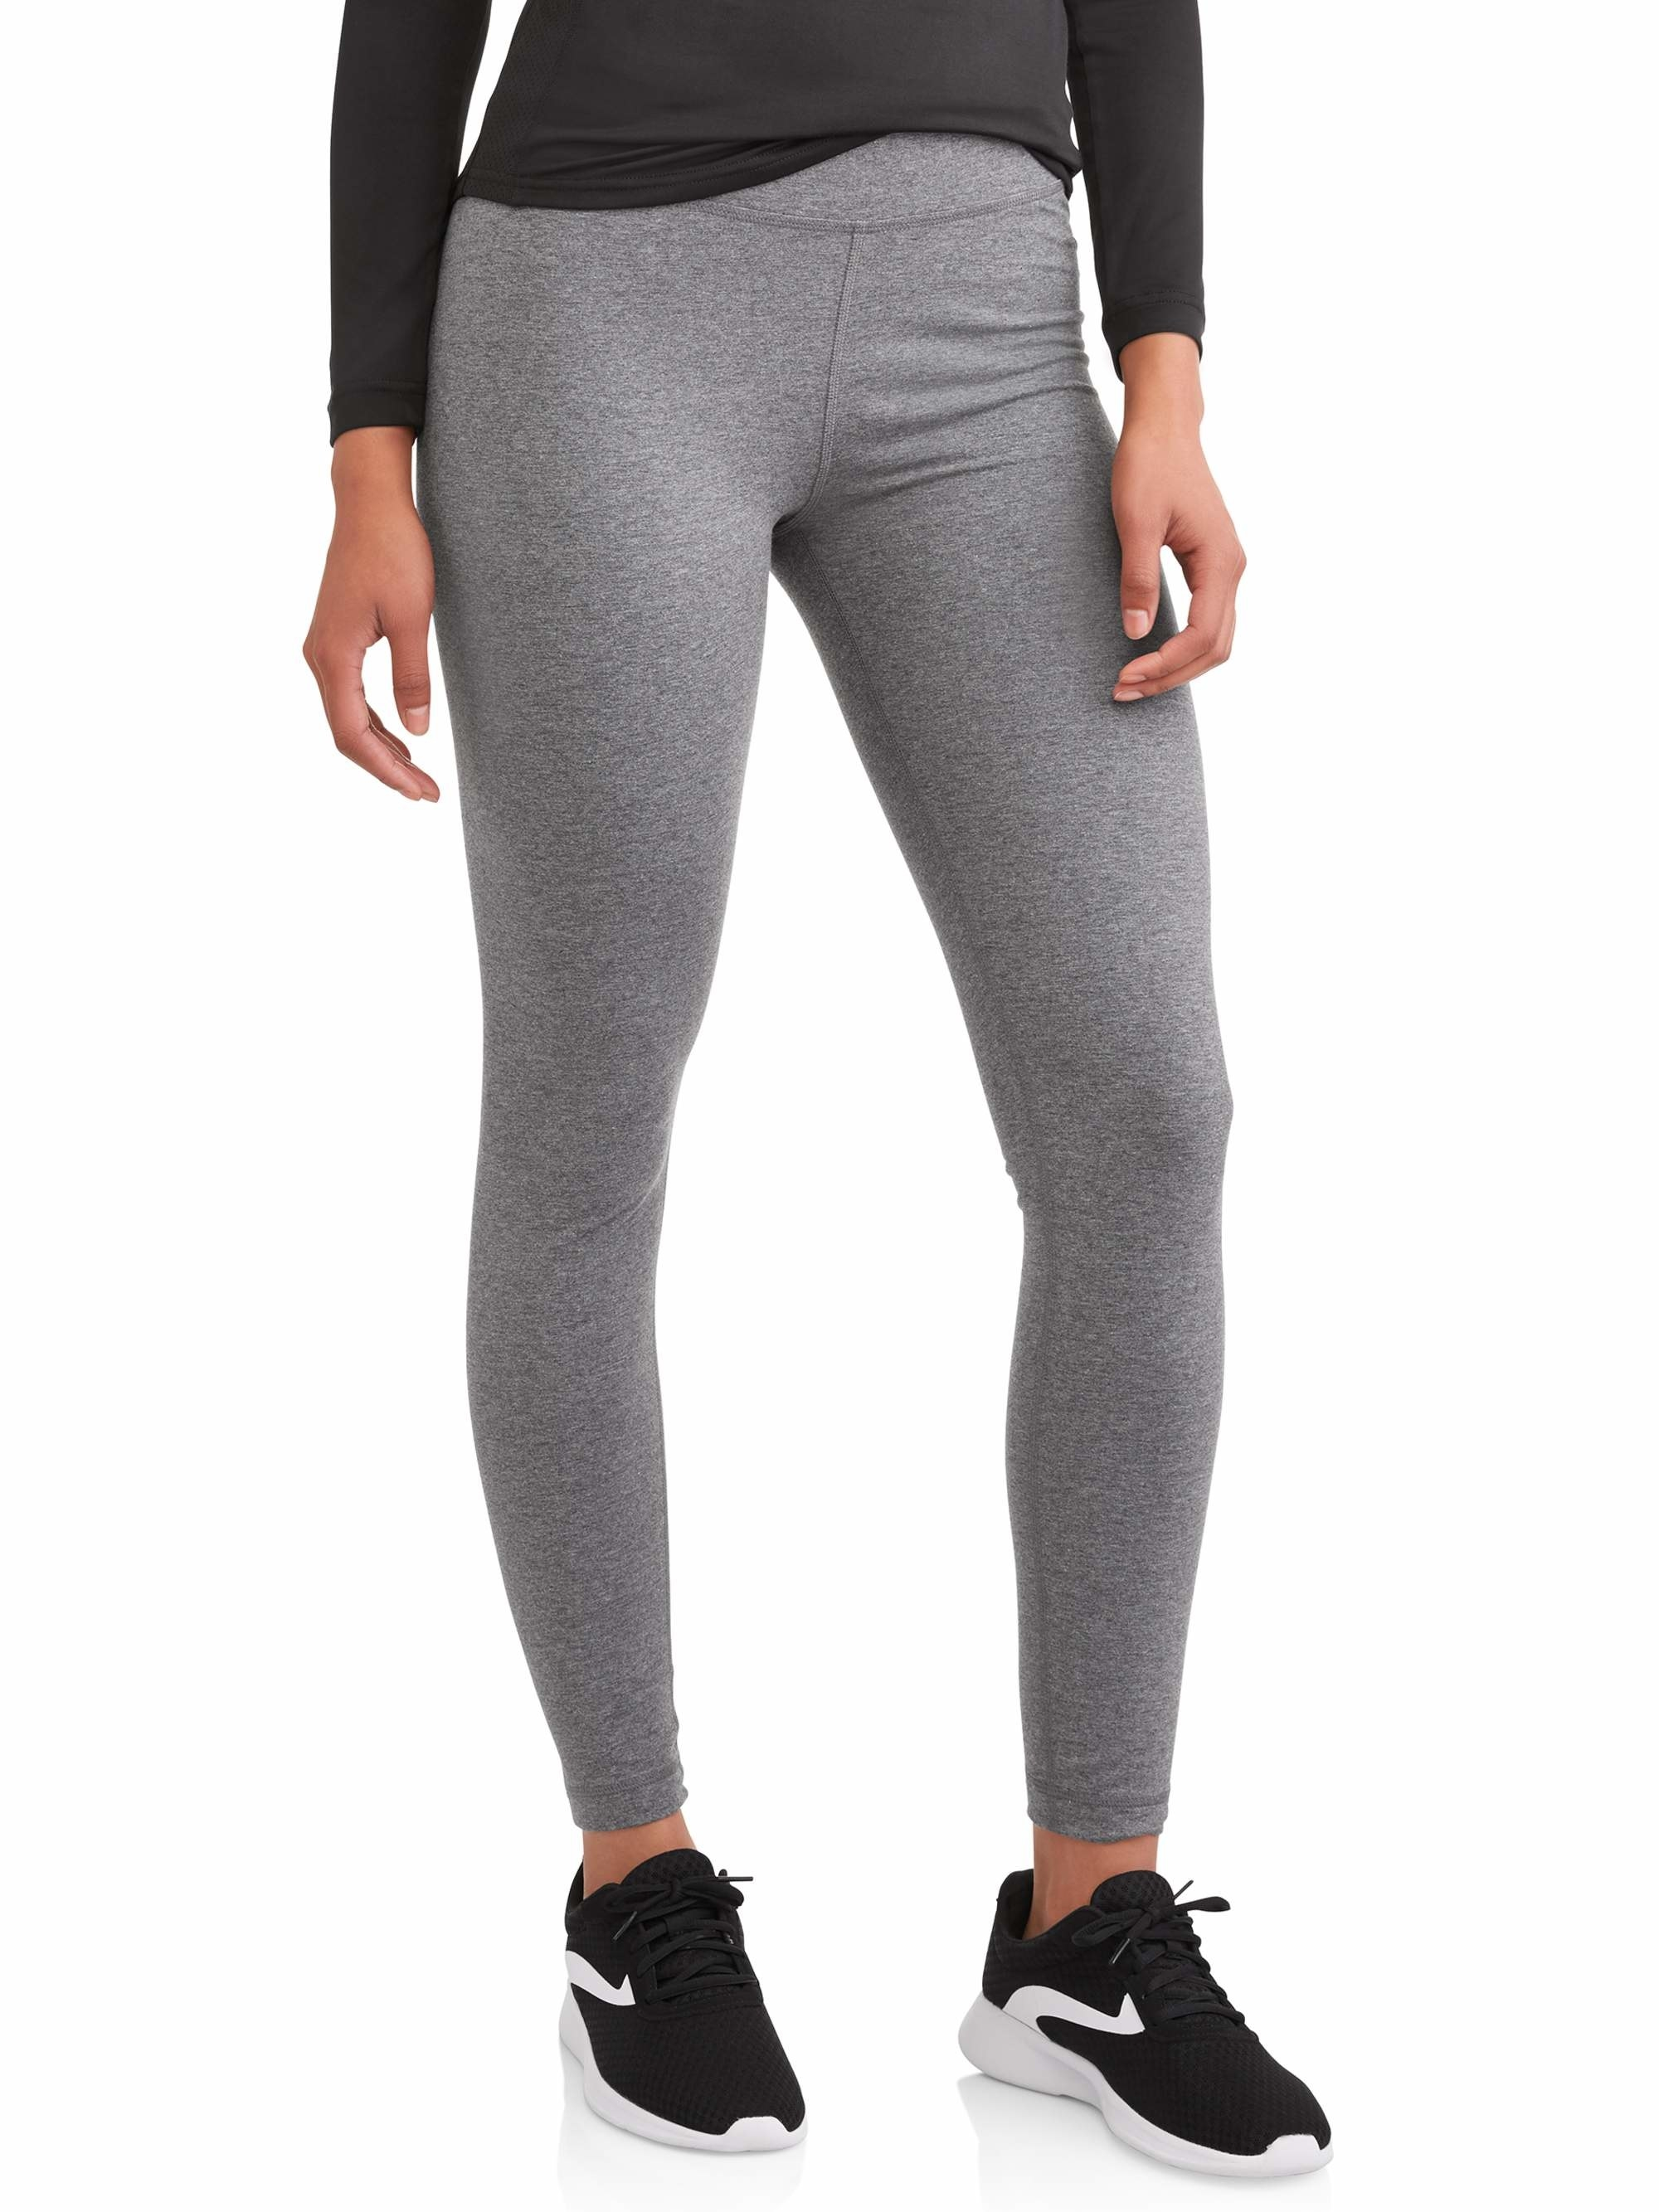 person wearing gray leggings with dark gray top and black sneakers